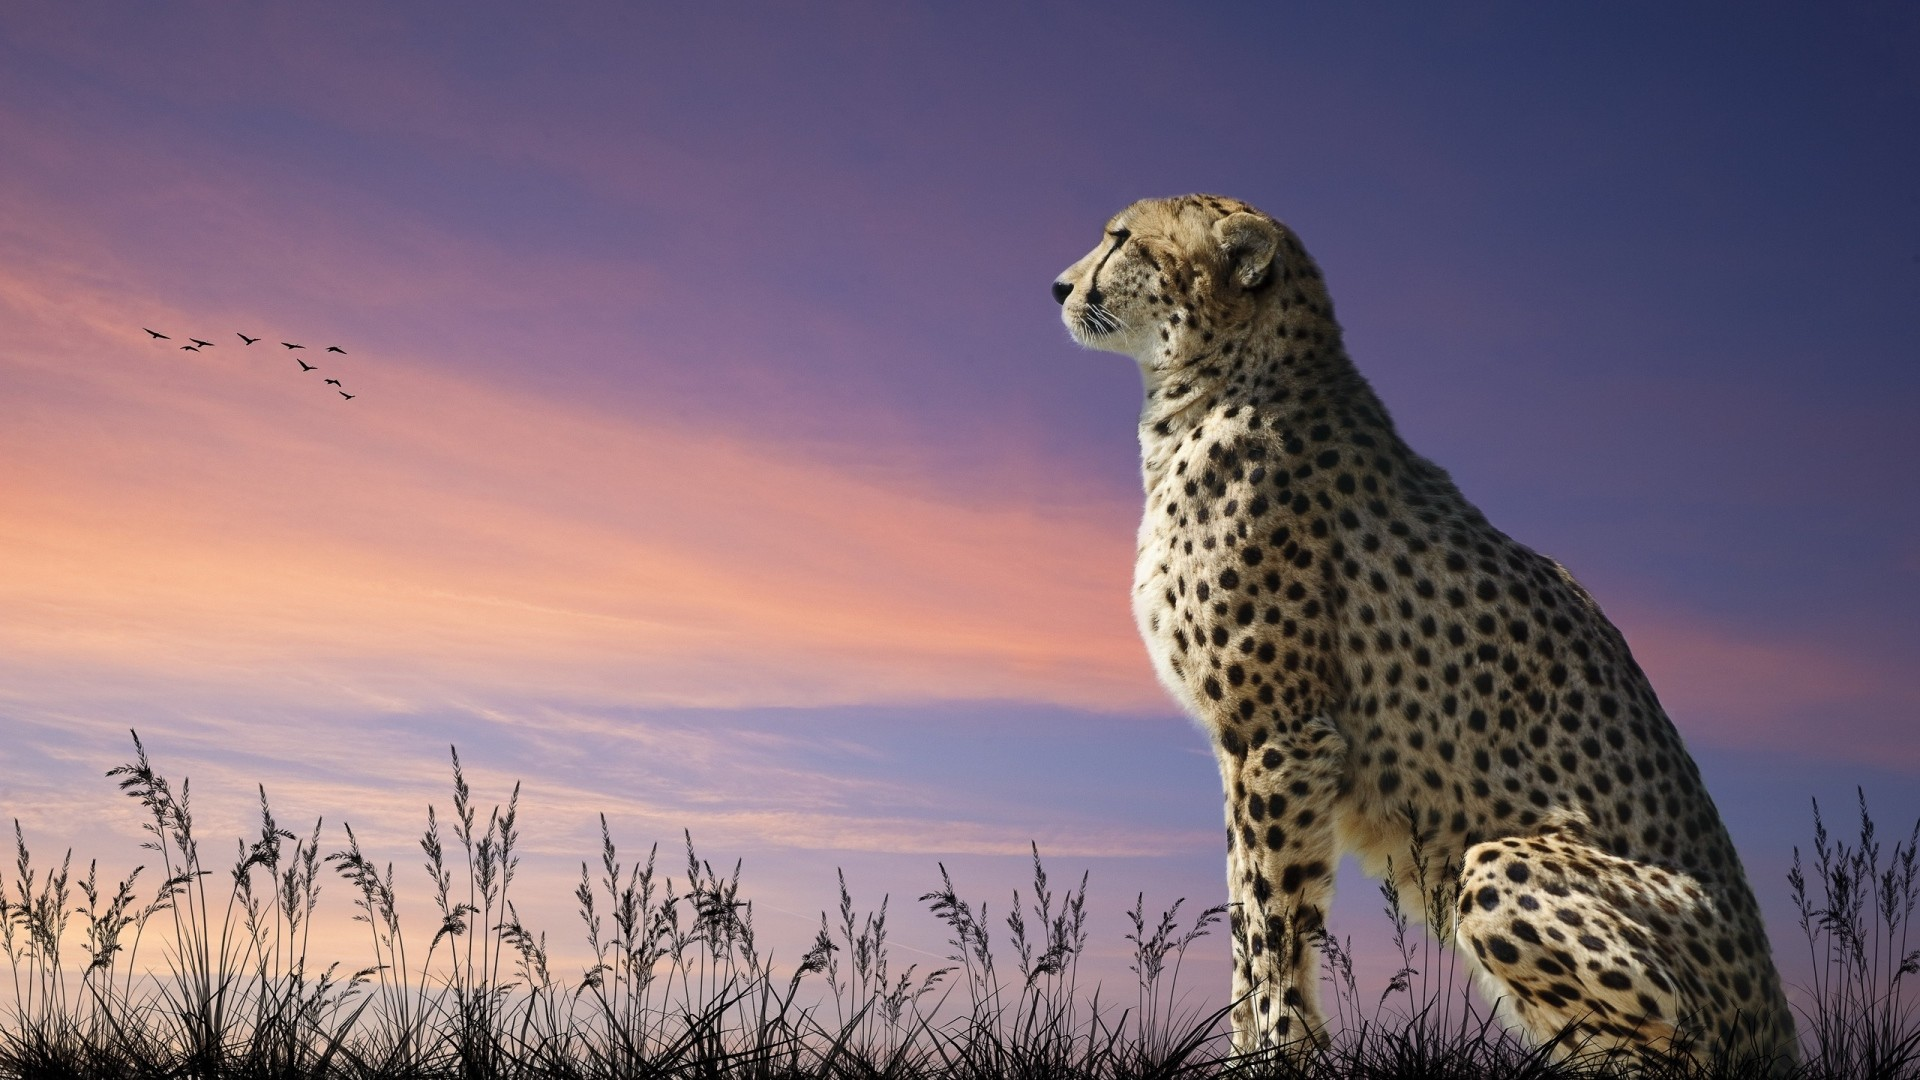 1920x1080 Animals  Full HD Wallpapers - 1080p Wallpapers | Full HD Wallpaper  leopard sunset field,